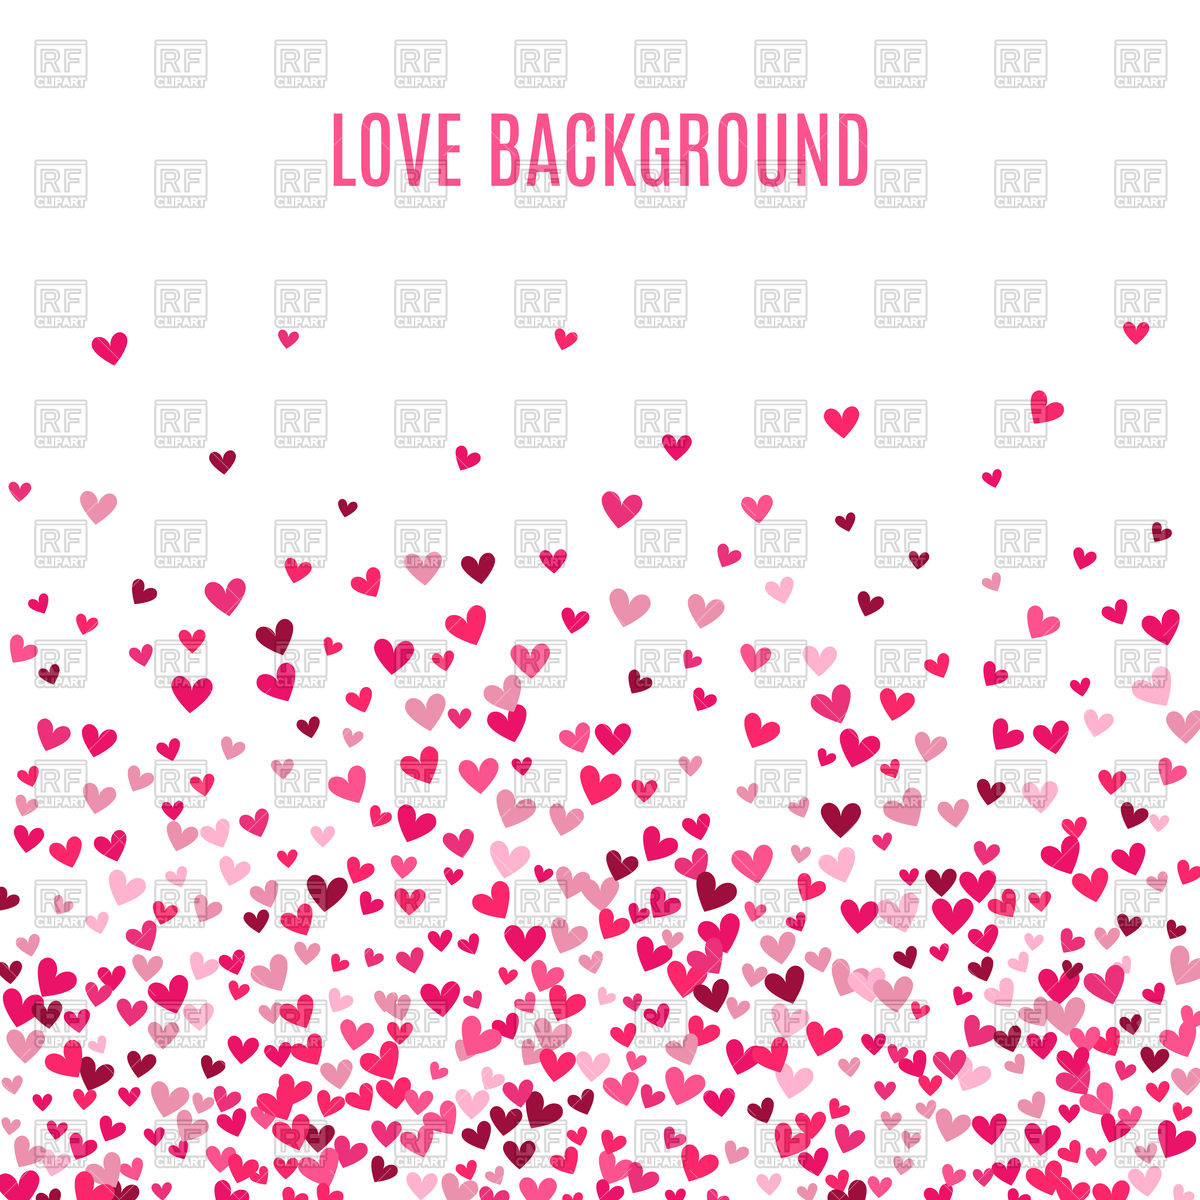 Romantic pink heart valentine background Vector Image of 1200x1200